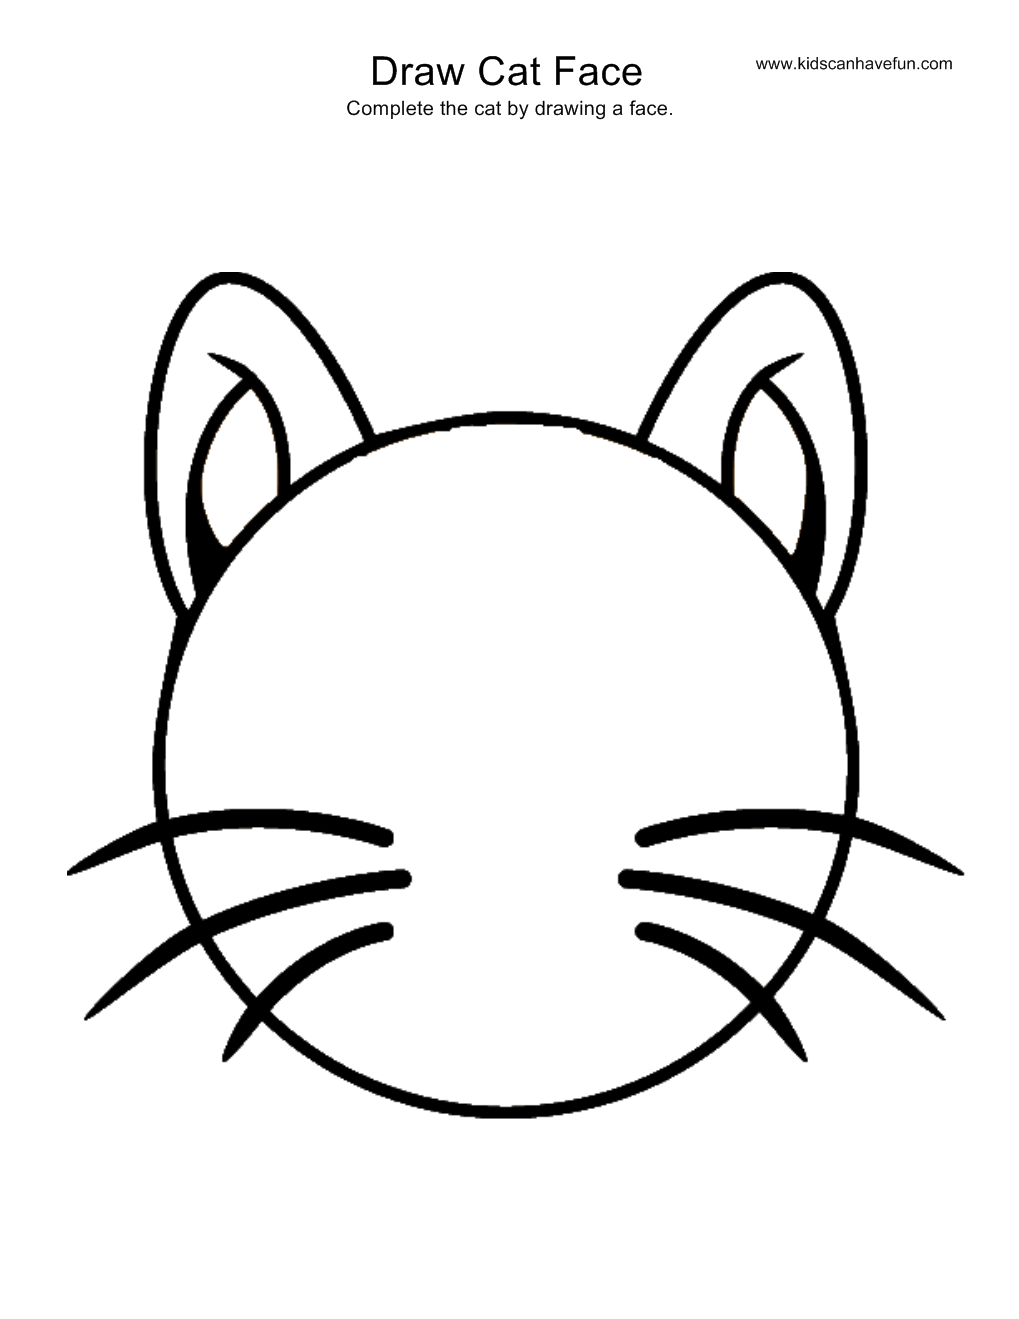 Scribble Drawing Exercise : Draw cat face activity more drawing pages of animals